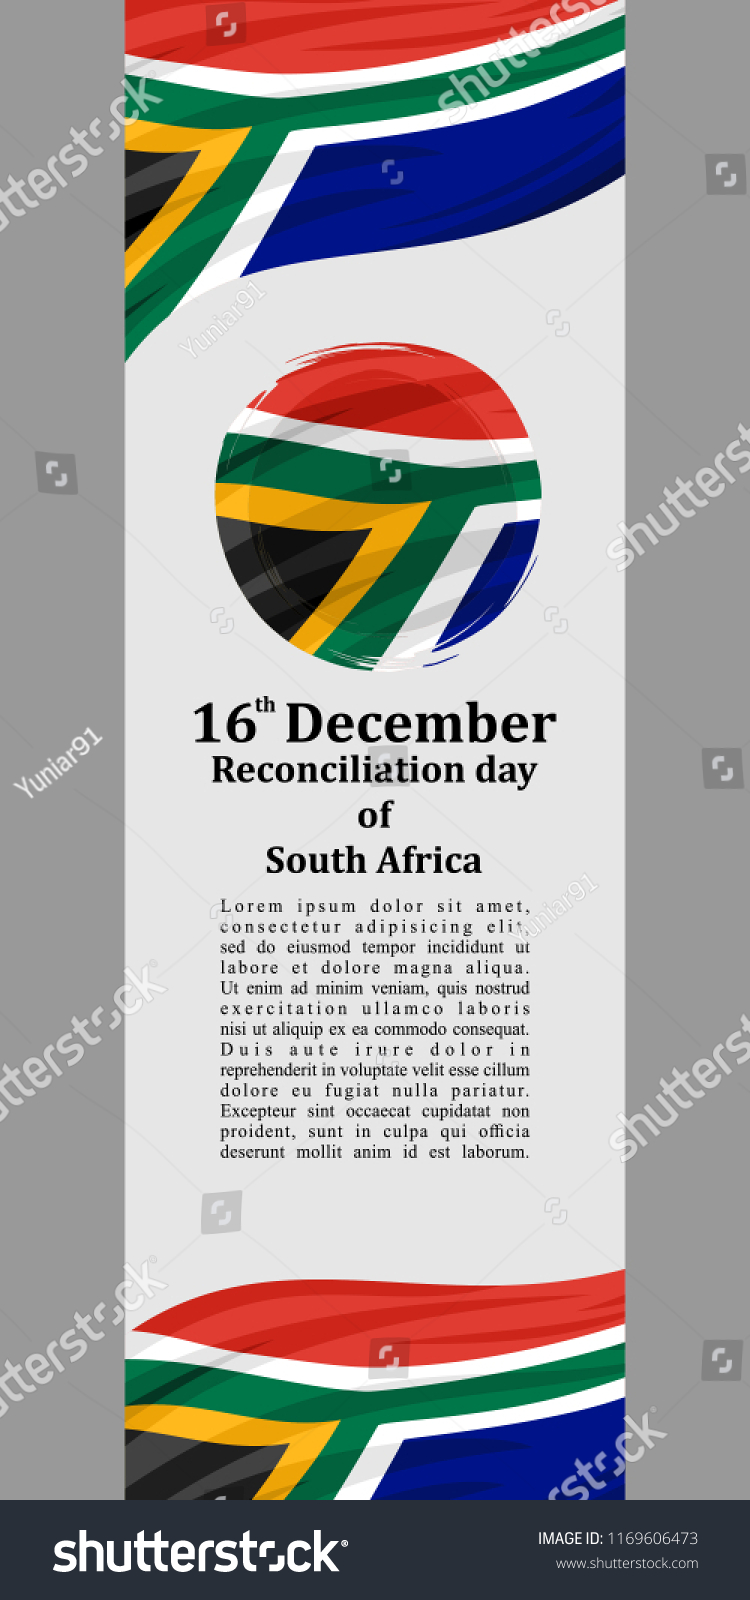 Reconciliation Day South Africa Vector Illustration Stock Vector